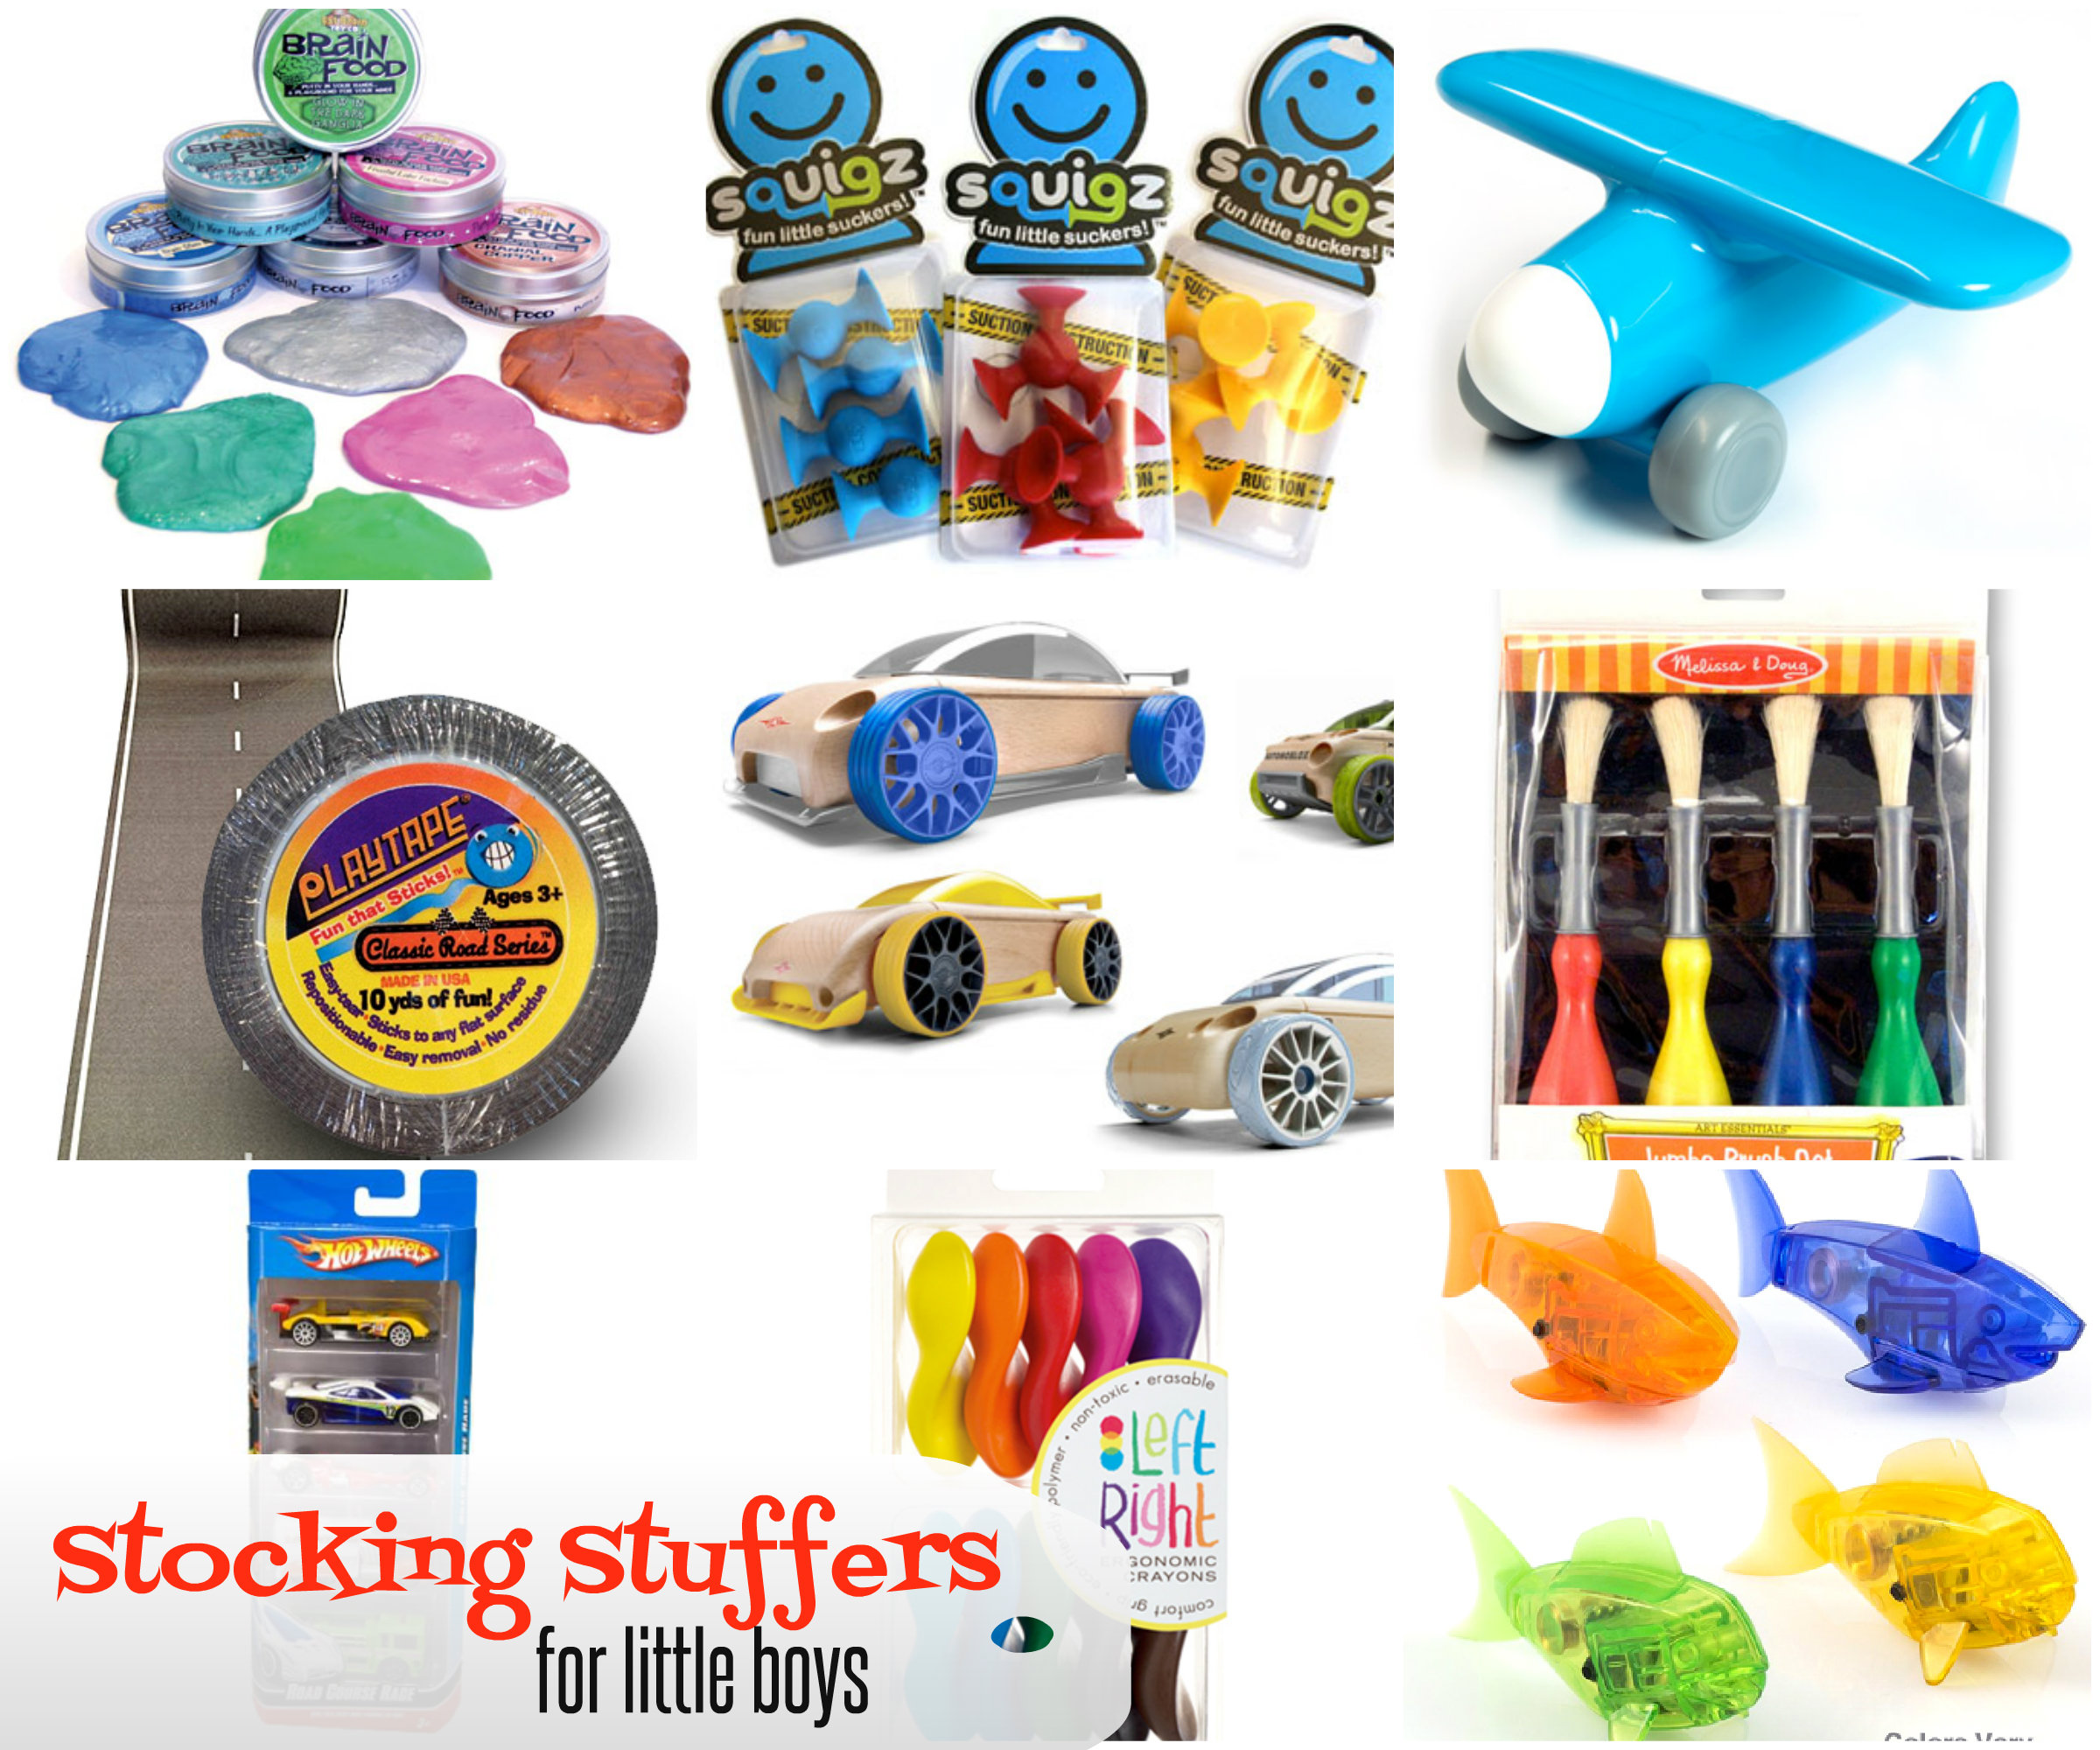 Top 10 Stocking Stuffers for Little Boys Girl Gone Mom